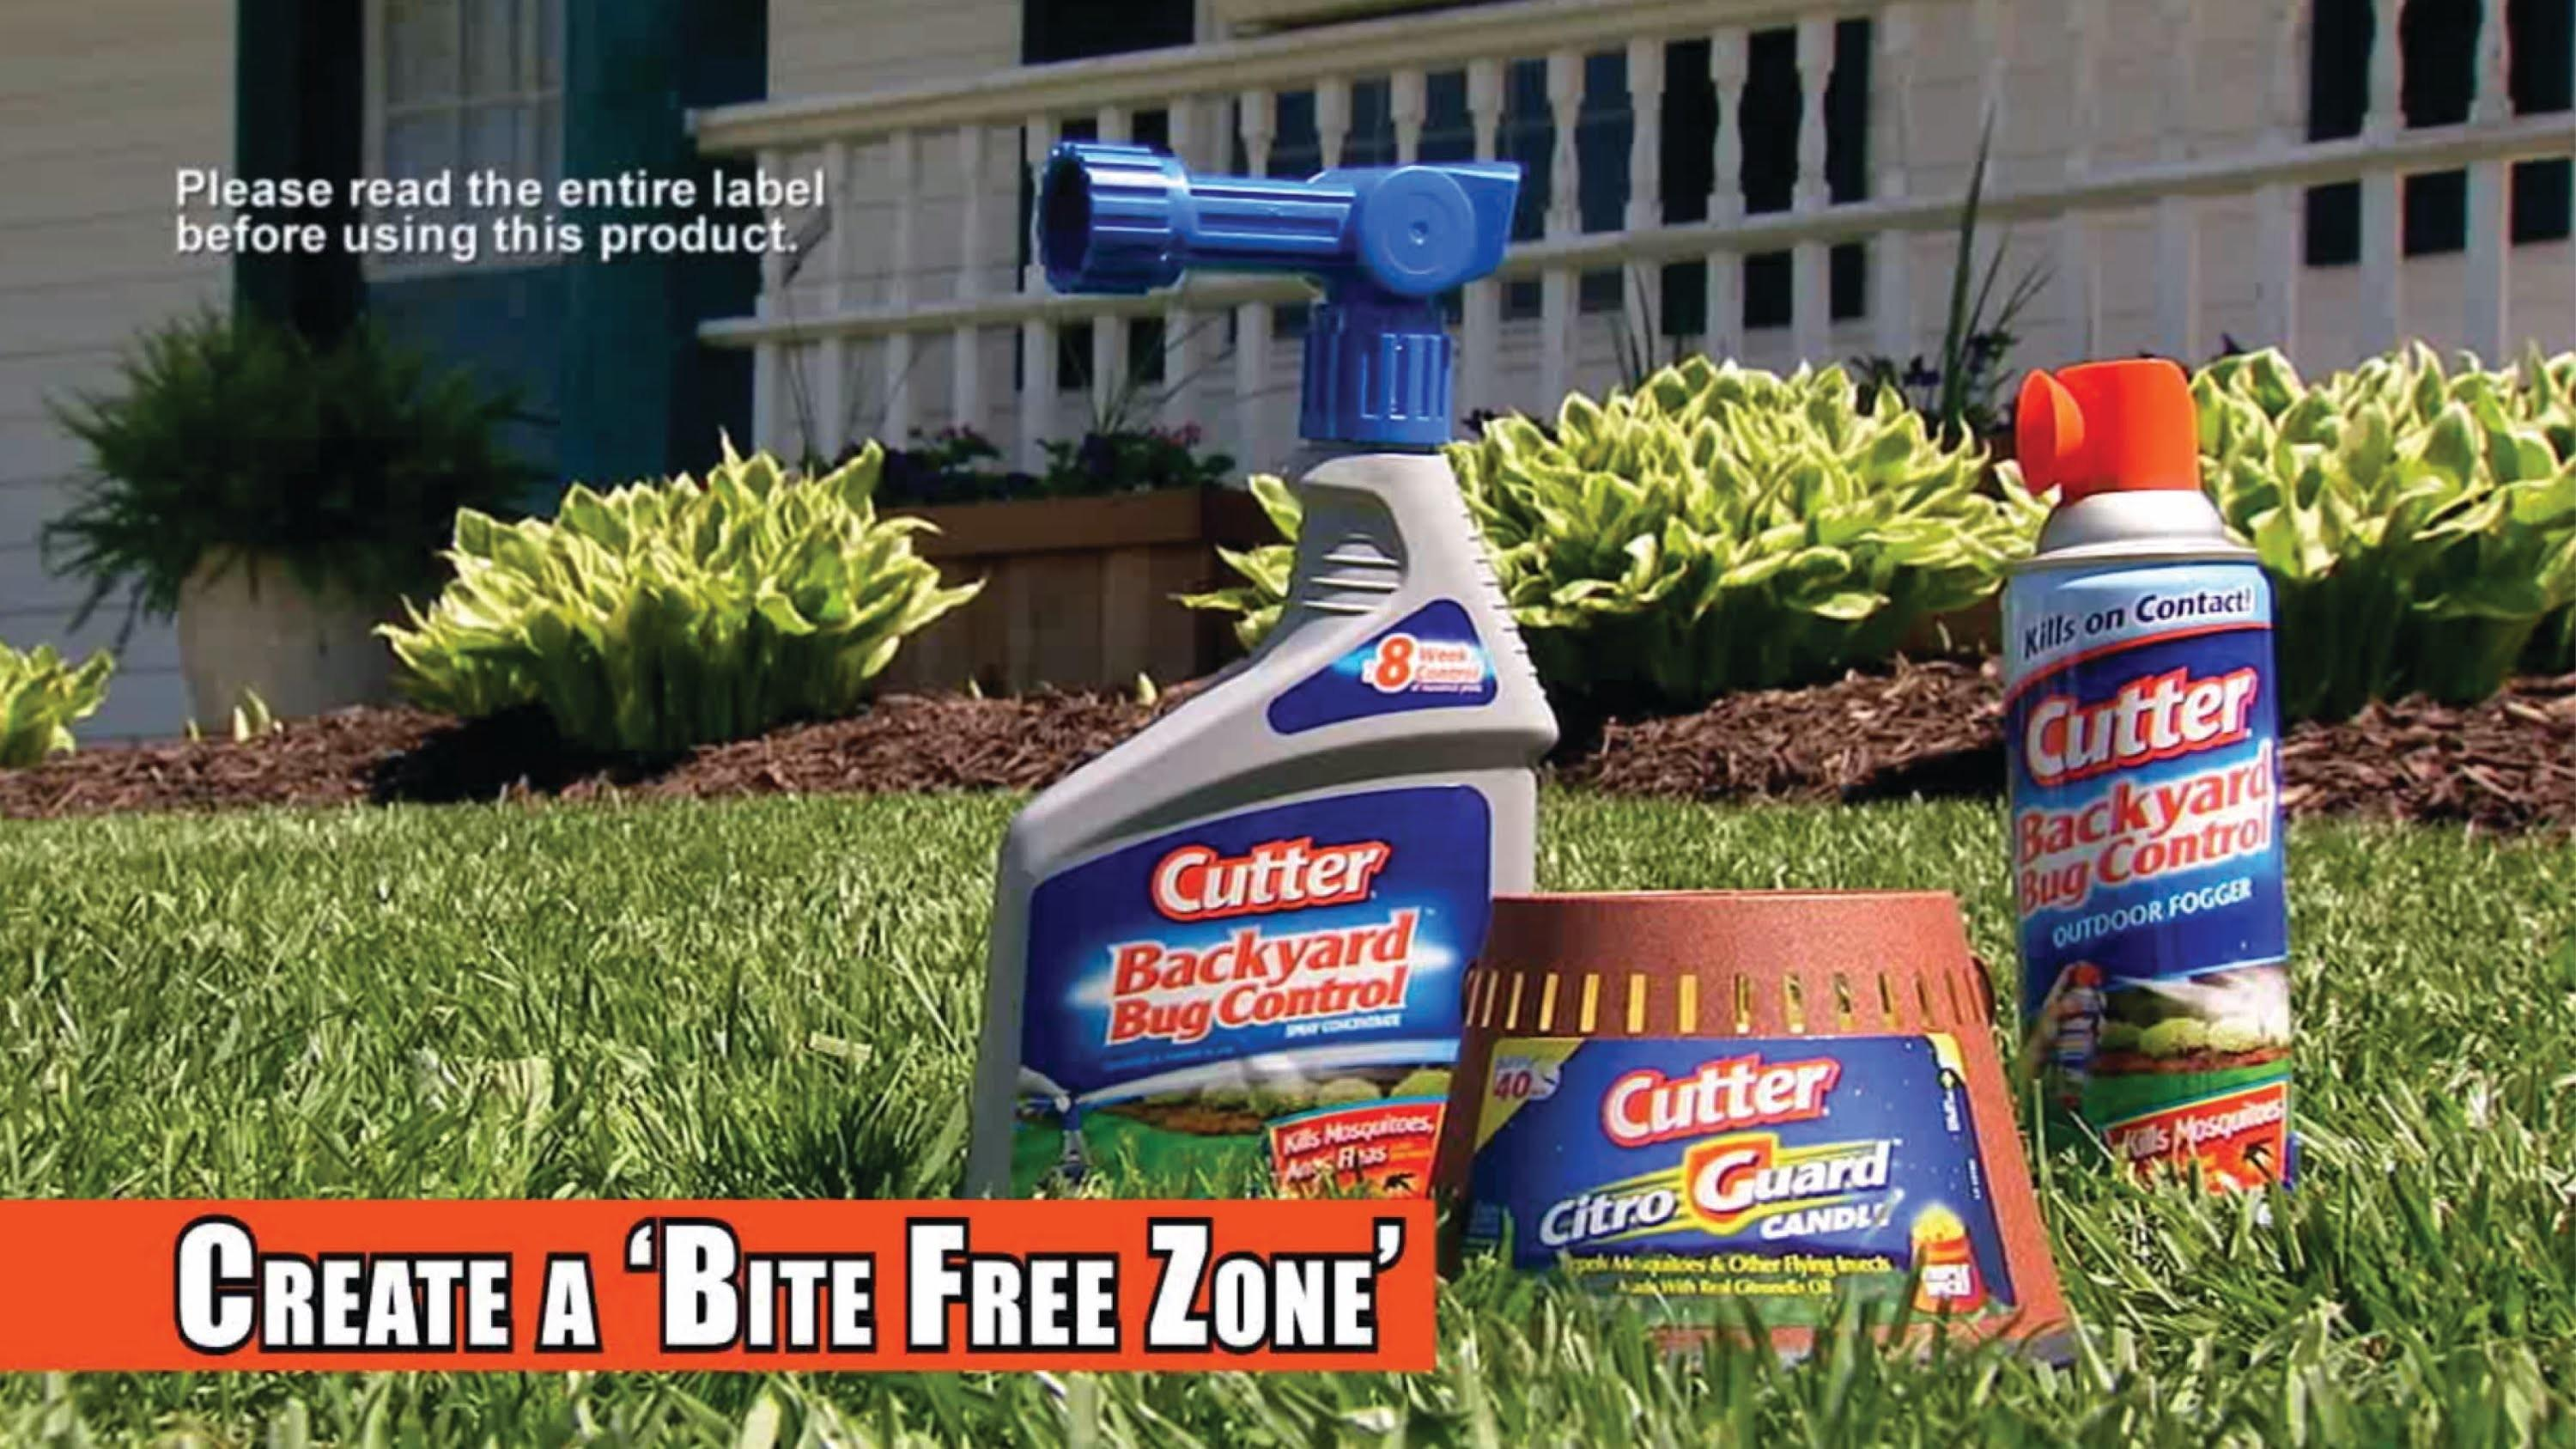 Cutter Insect Repellent Backyard Bug Control Products